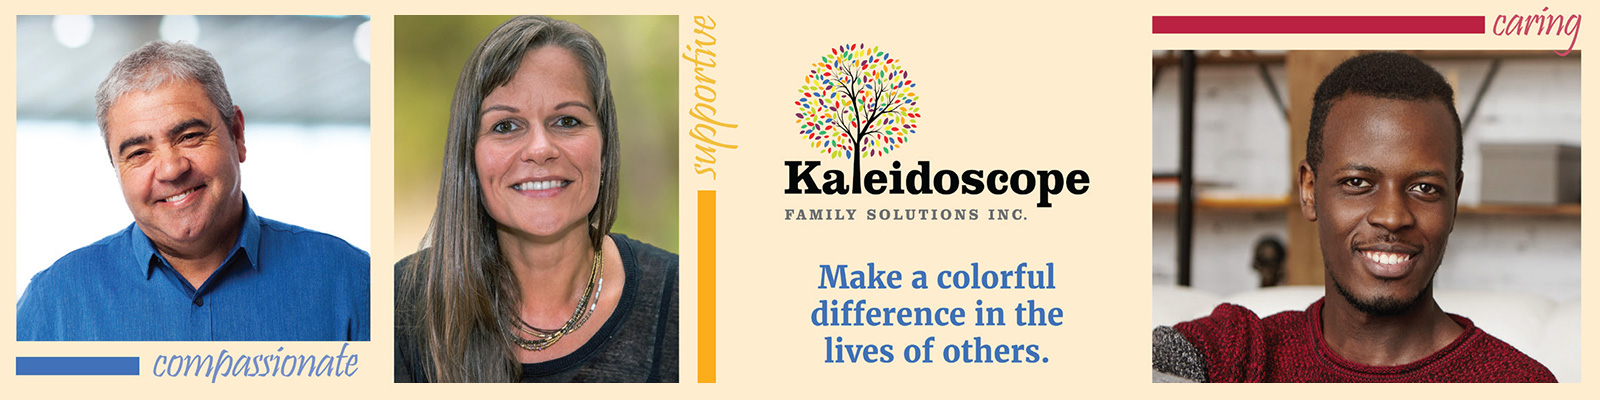 Kaleidoscope Family Solutions Inc - Direct Support Professinal (DSP) banner image